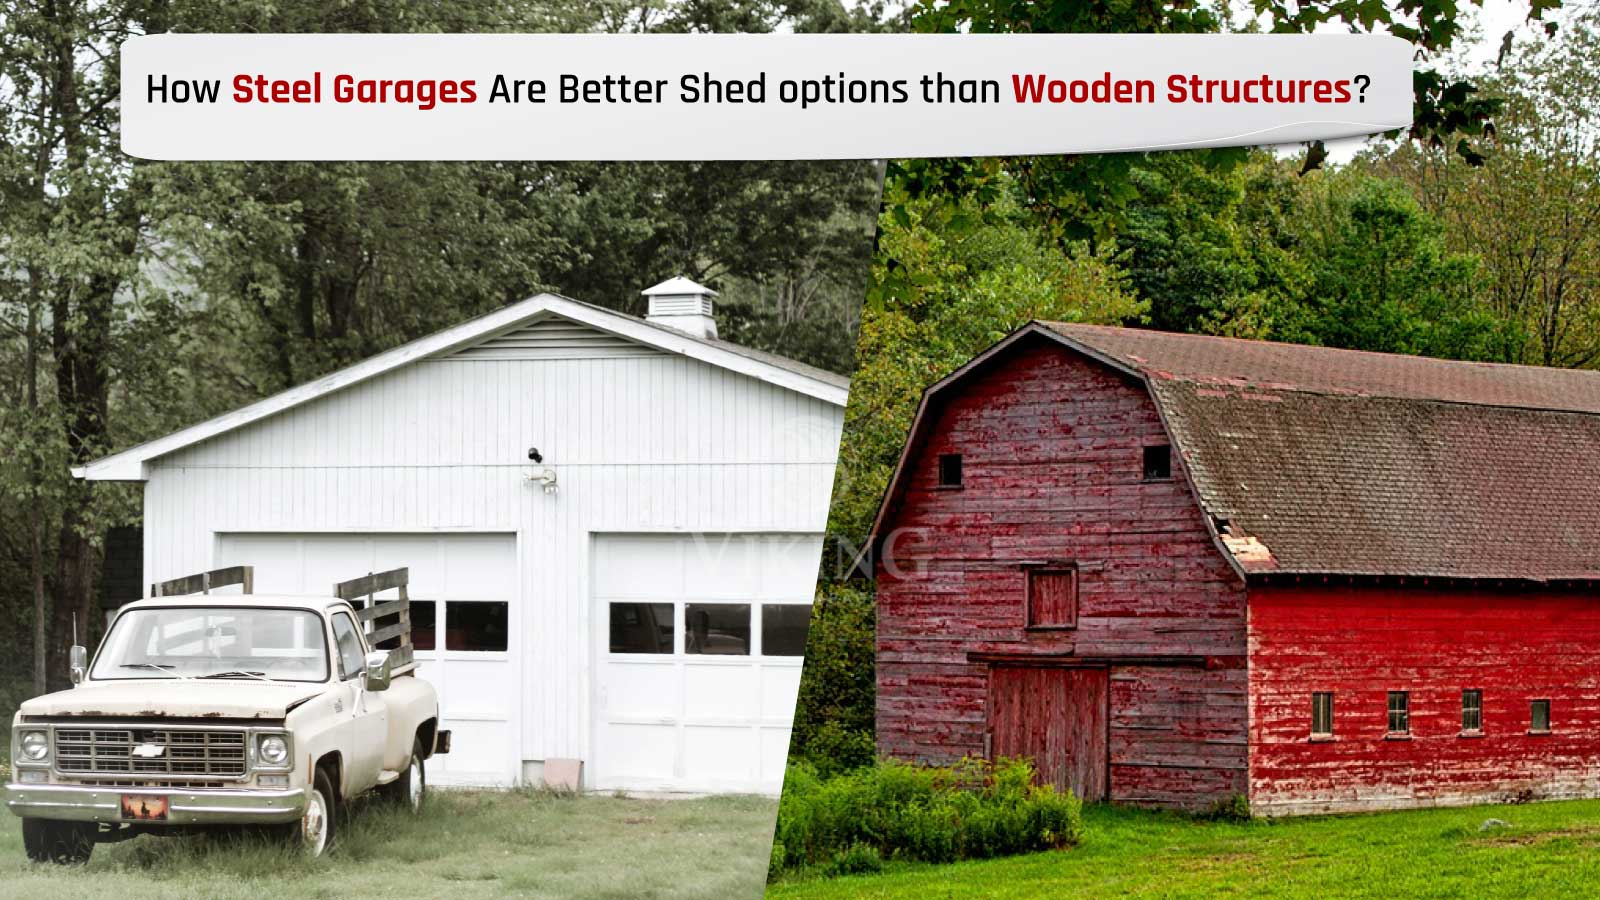 How Steel Garages Are Better Shed options than Wooden Structures?